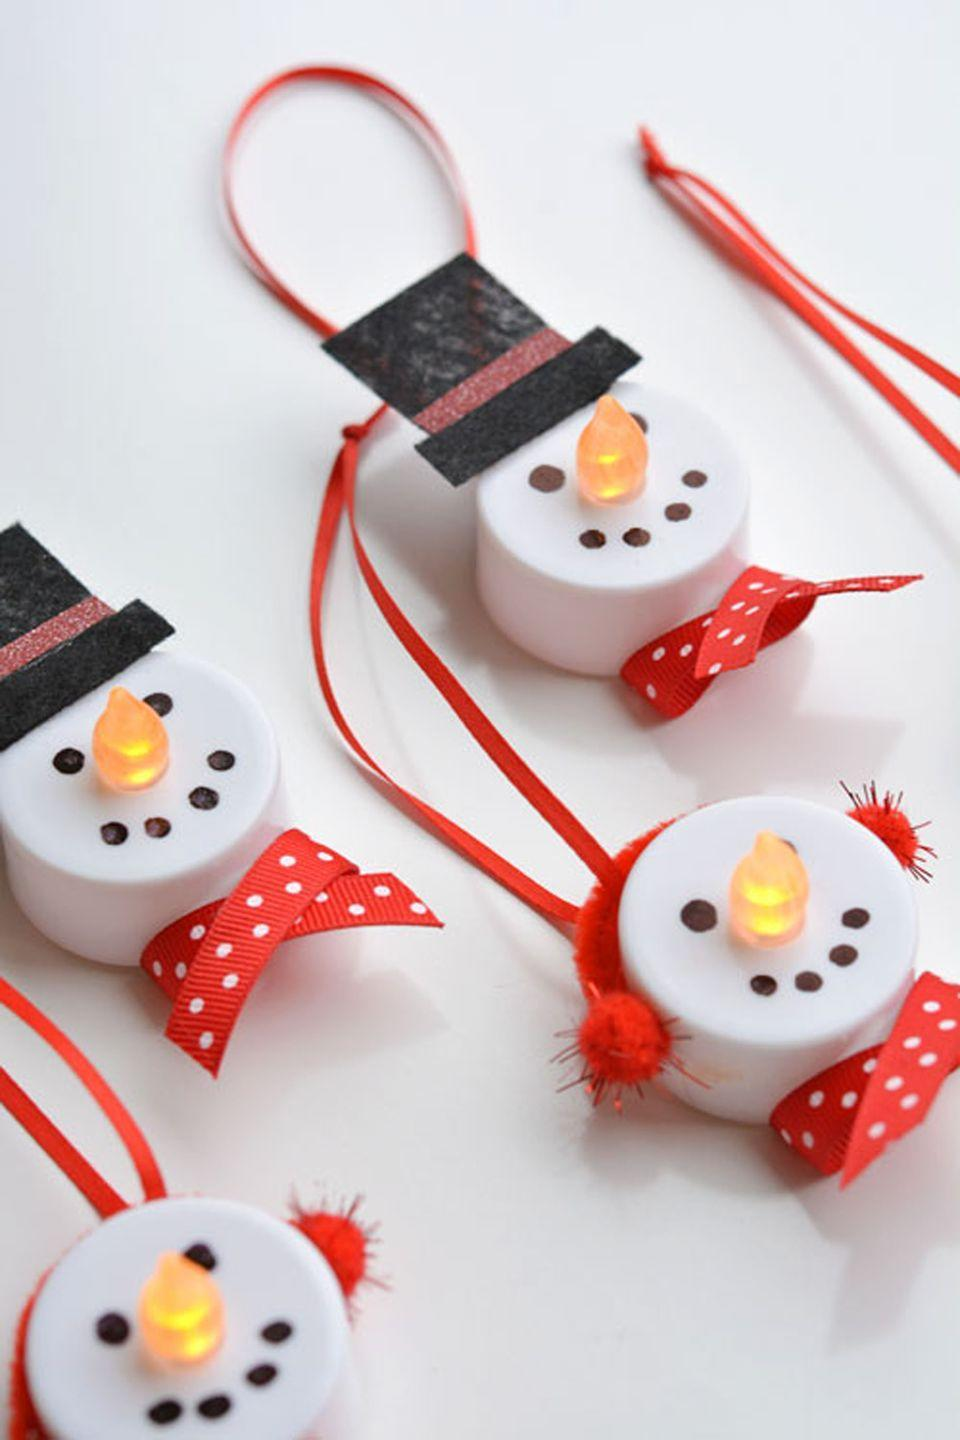 "<p>Turning tea lights into snowman ornaments? Now that's a bright idea!</p><p><strong>Get the tutorial at <a href=""http://onelittleproject.com/tea-light-snowman-ornaments/2/"" rel=""nofollow noopener"" target=""_blank"" data-ylk=""slk:One Little Project"" class=""link rapid-noclick-resp"">One Little Project</a>.</strong></p>"